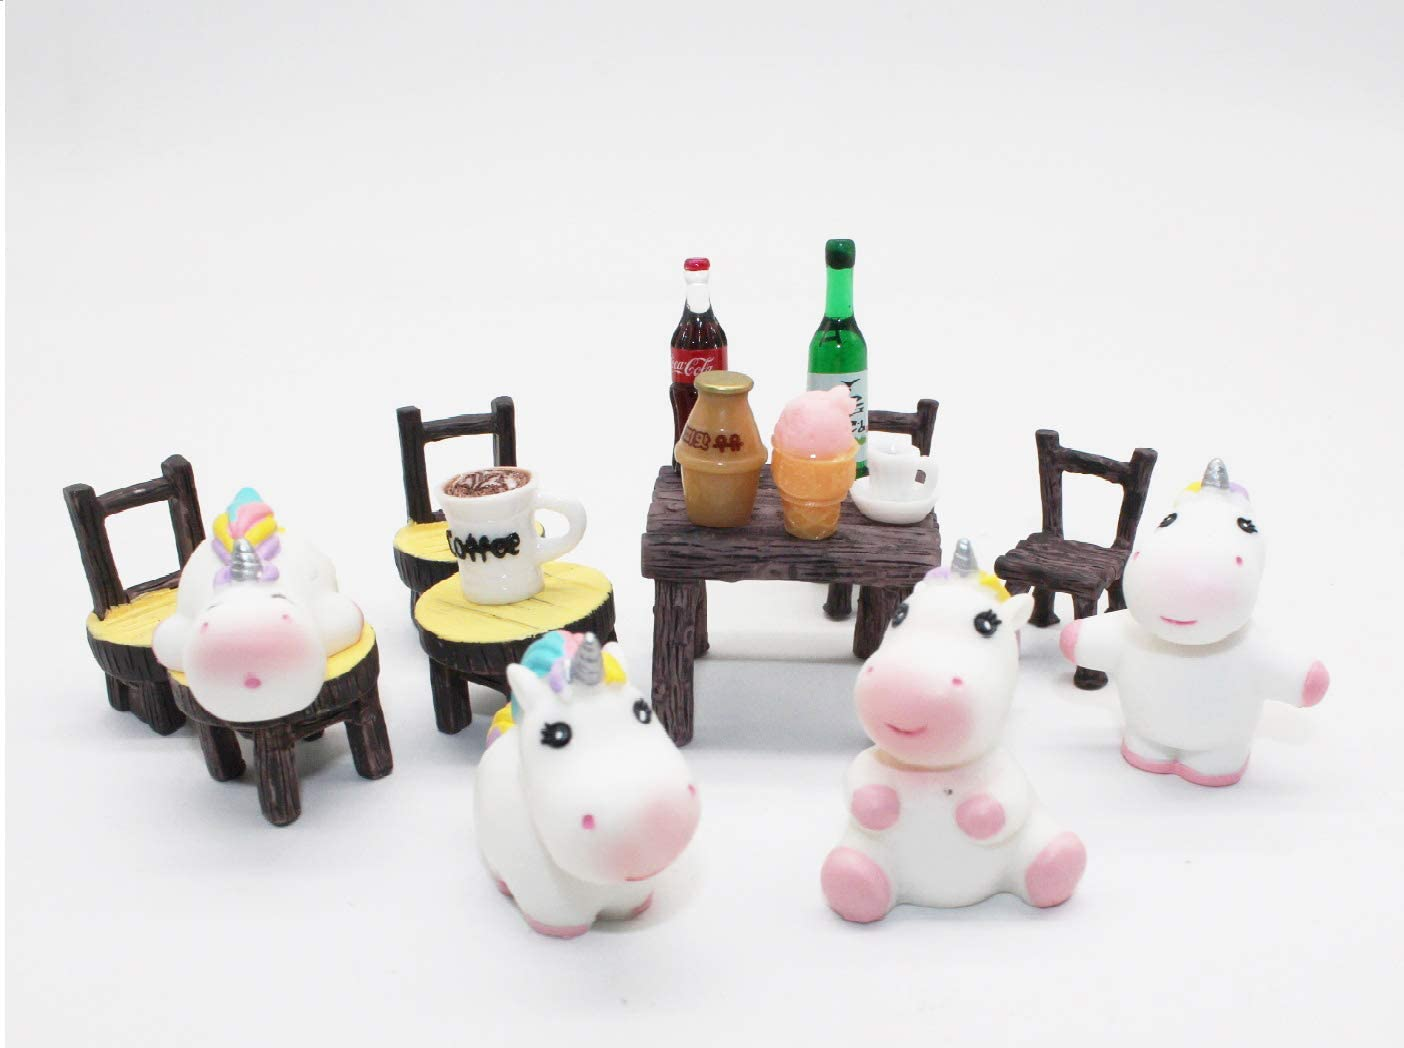 Miniature Fairy Garden Landscape Decoration, Include 4 Pieces Miniature Unicorn Horse and 6 Pieces Table and Chairs, 6 Pieces Bistro Drink Kit for Garden Crafts Flowerpot Fairy Decoration